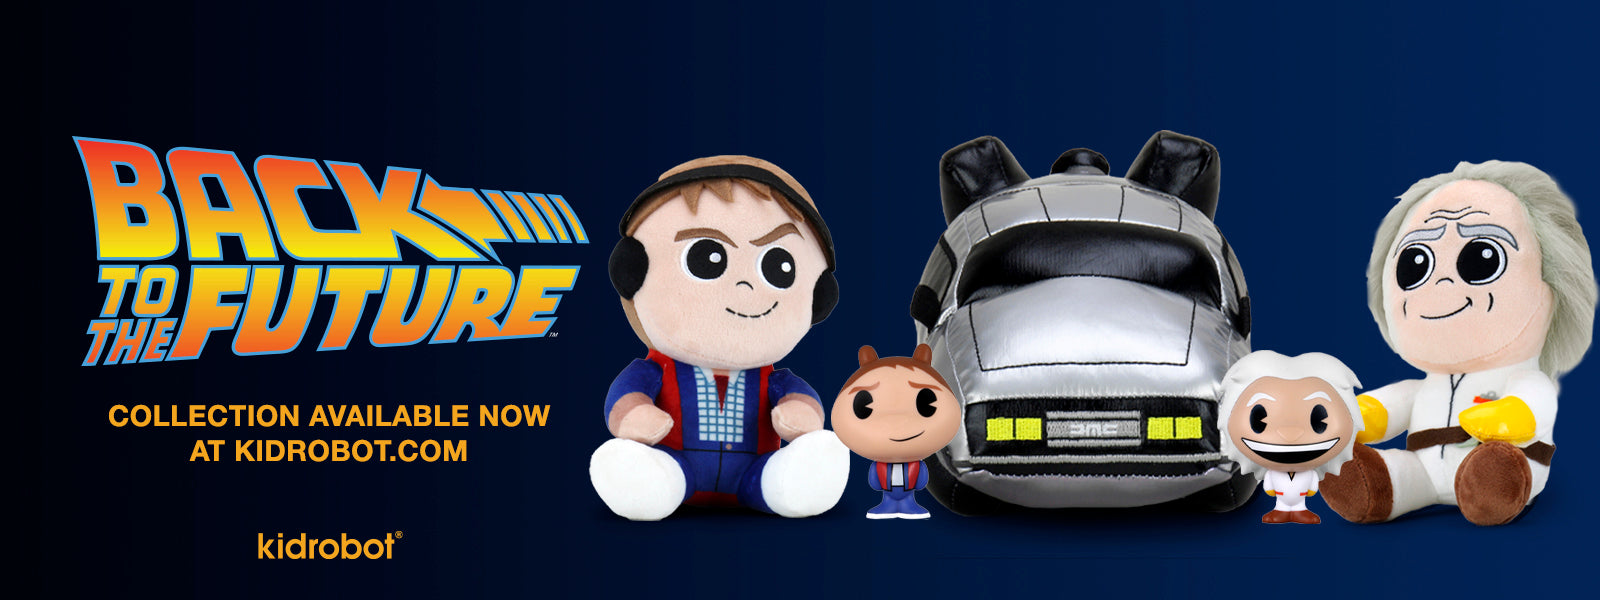 Back to the Future Day at Kidrobot.com